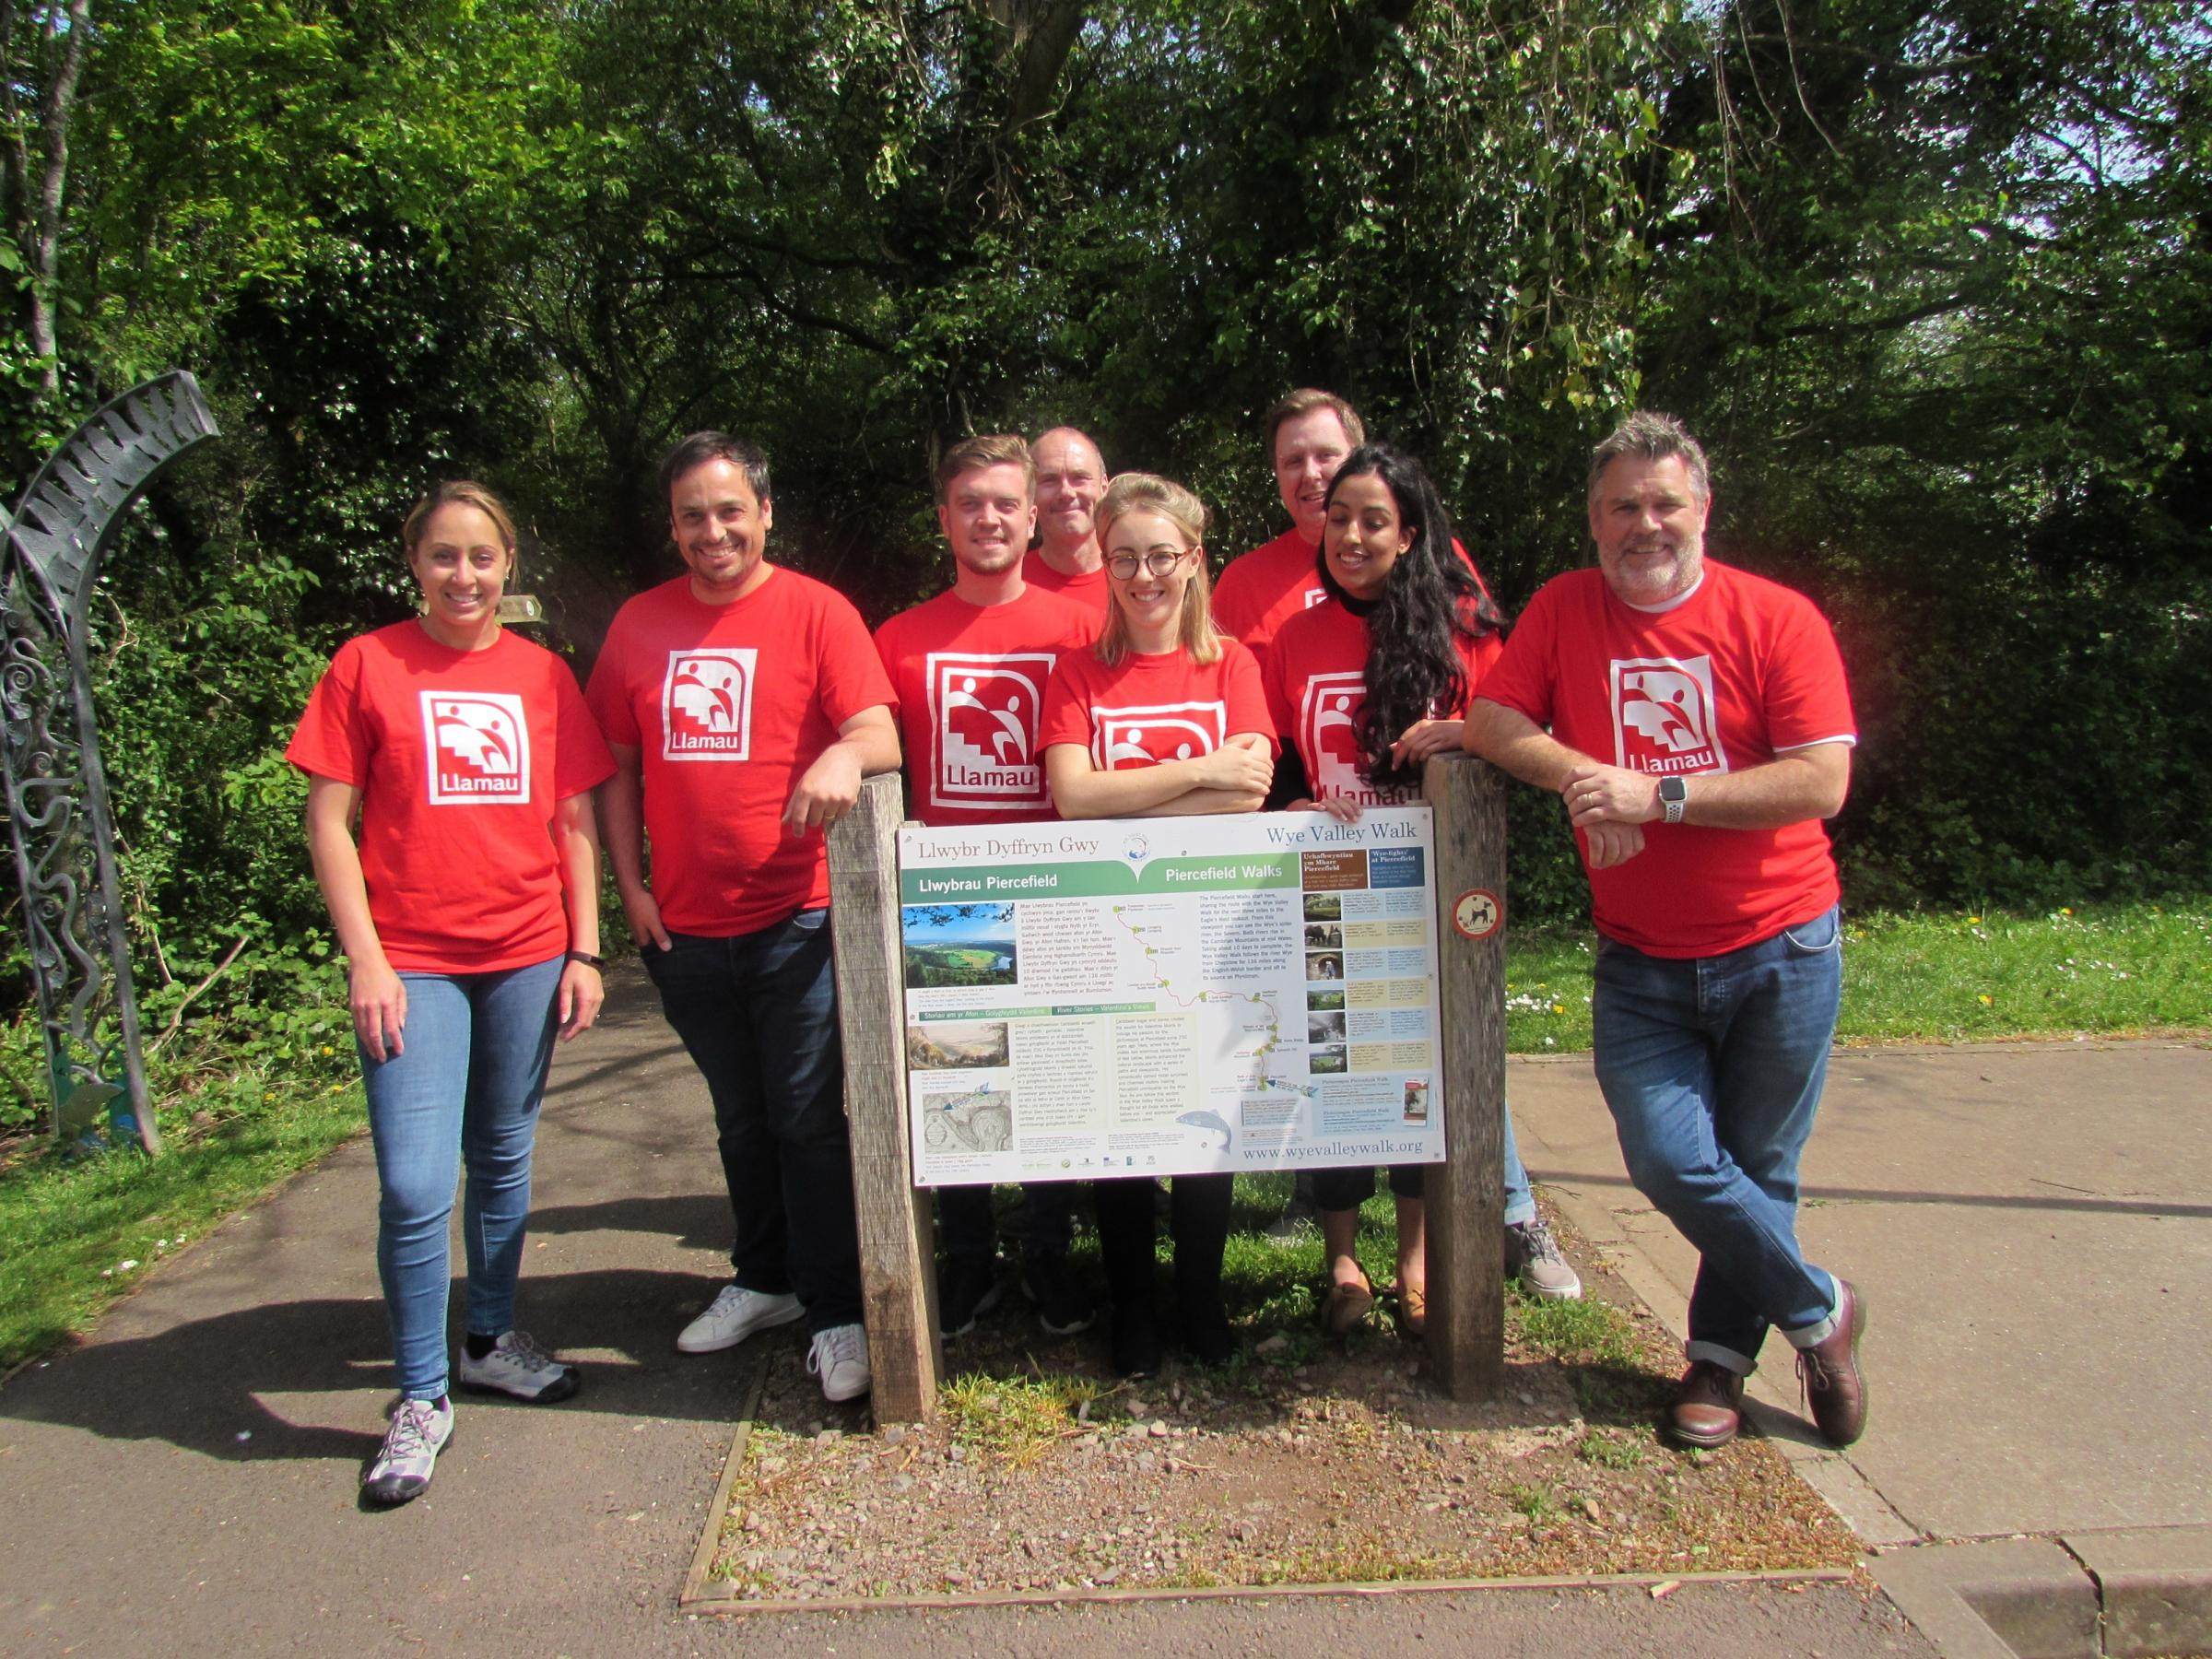 Communications agency Cohesive has organised a charity walk to help stamp out homelessness